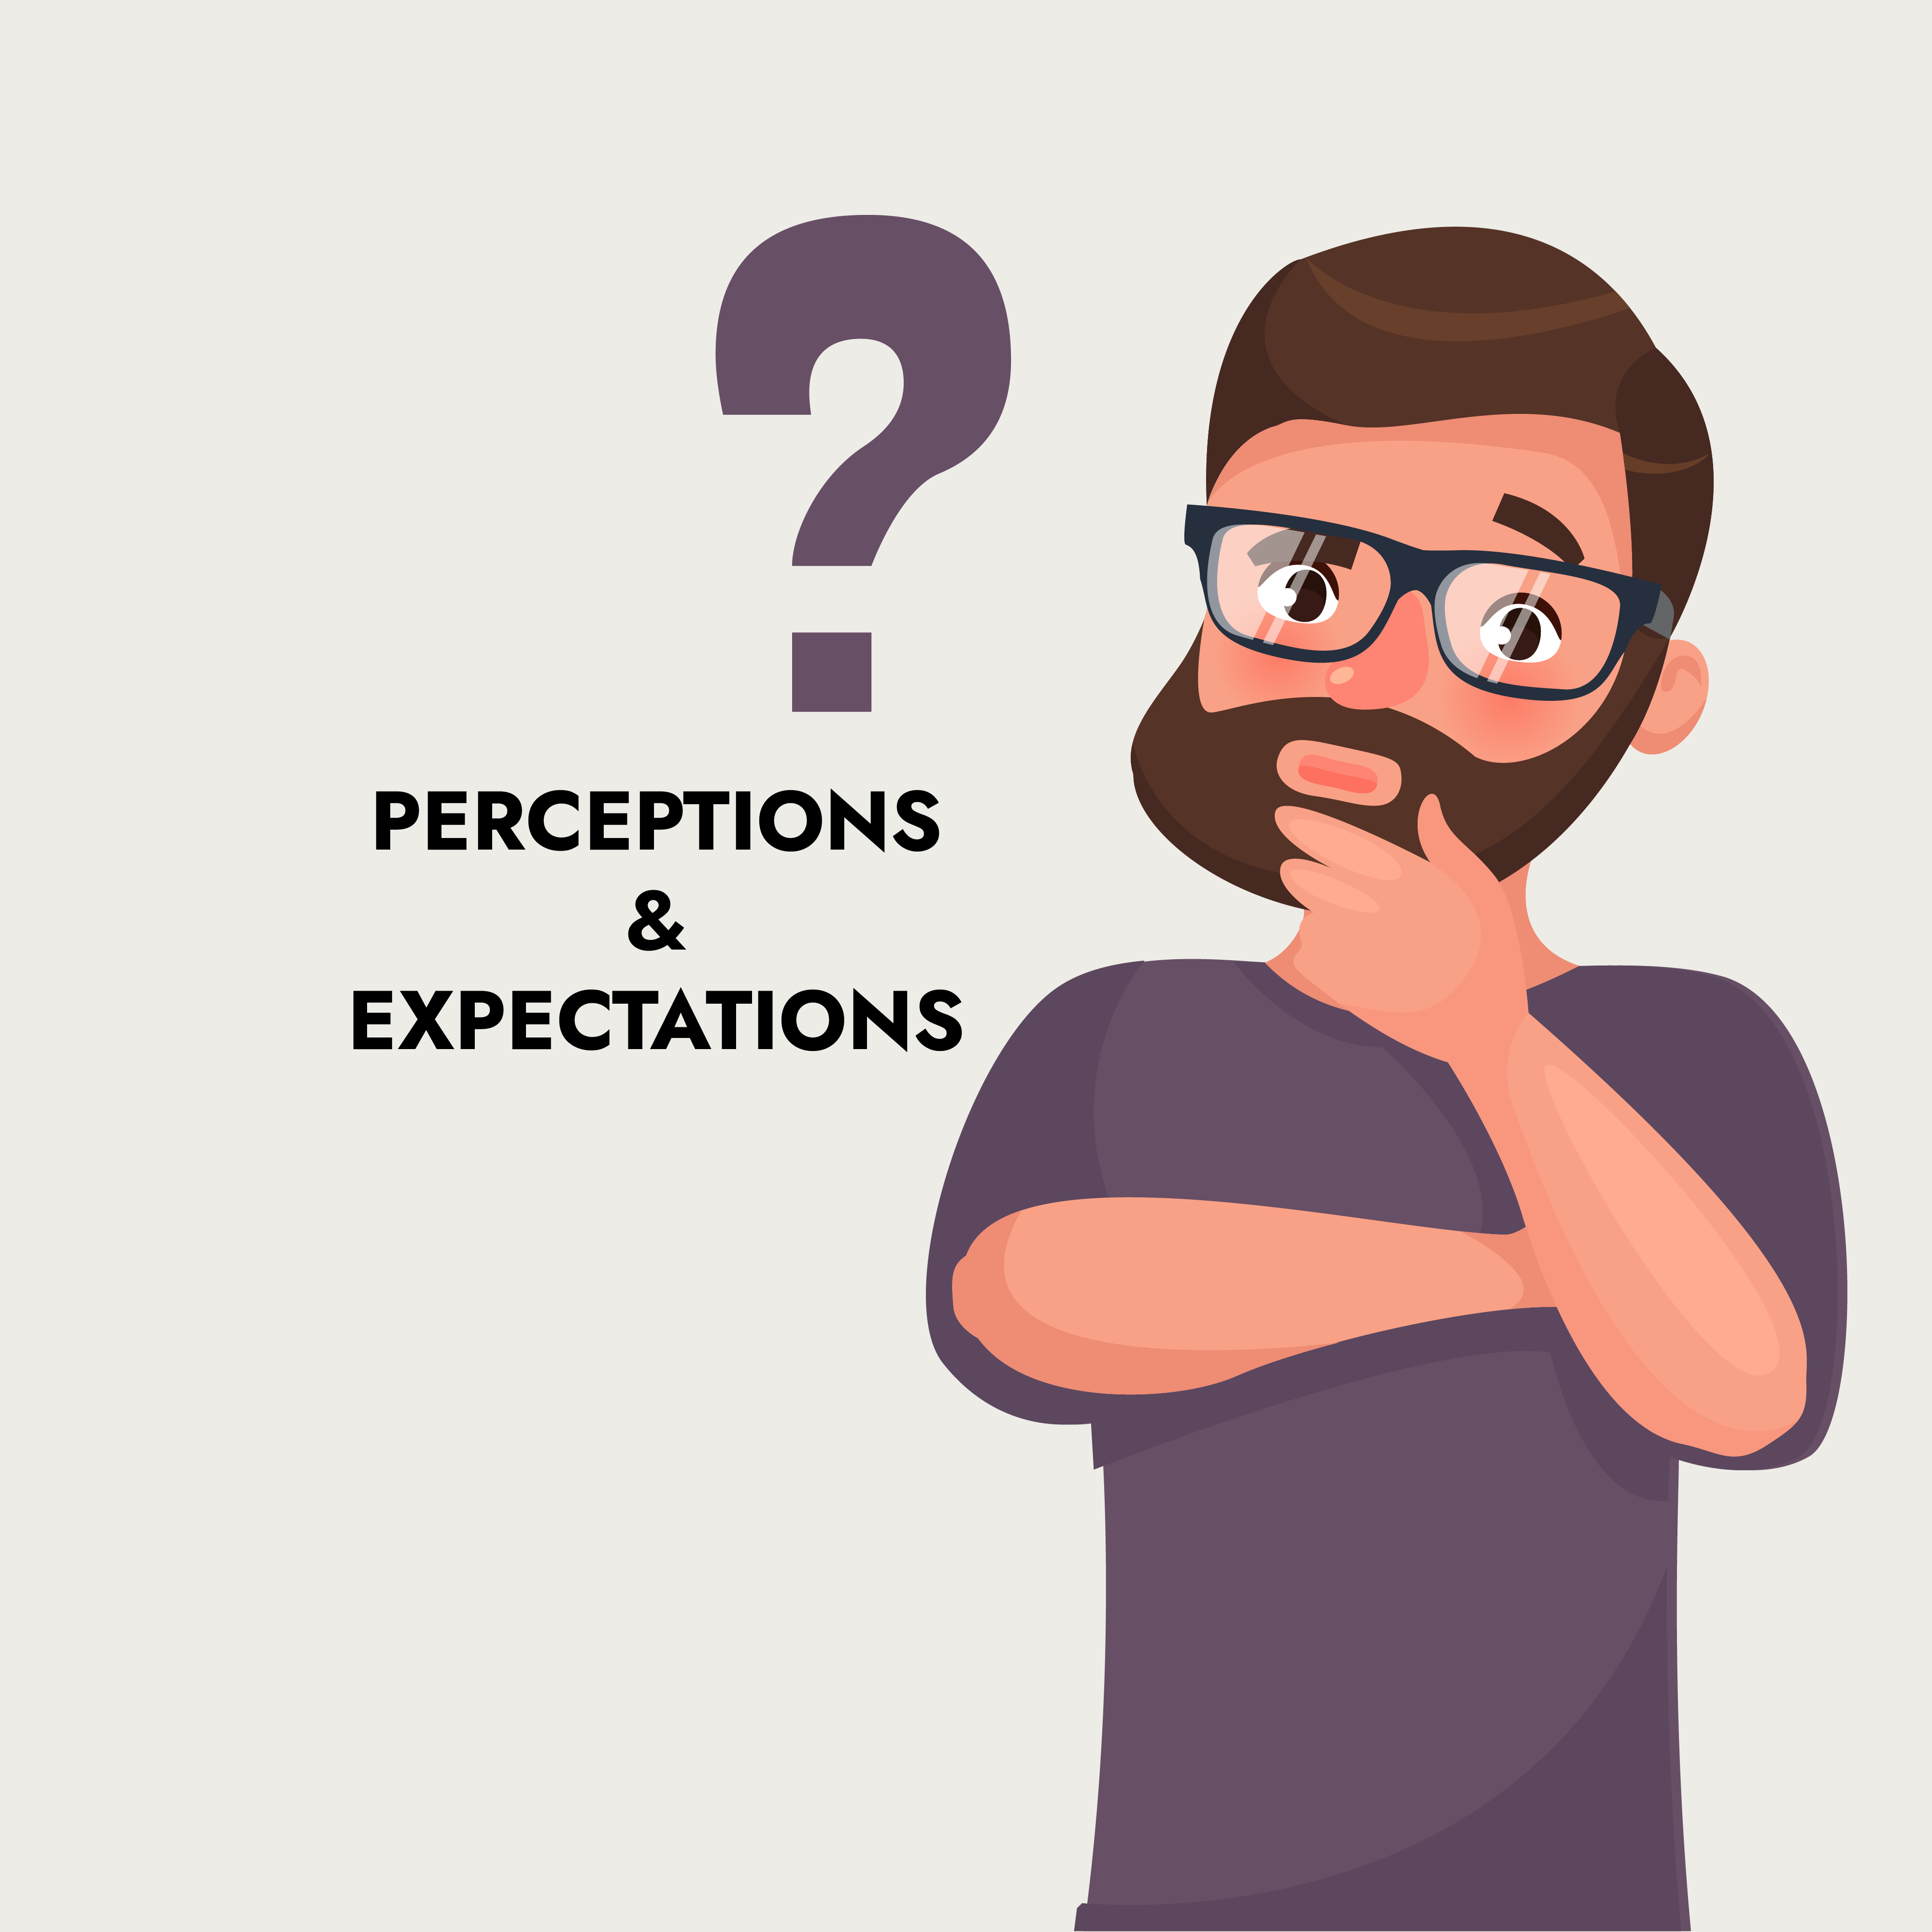 Perceptions & Expectations